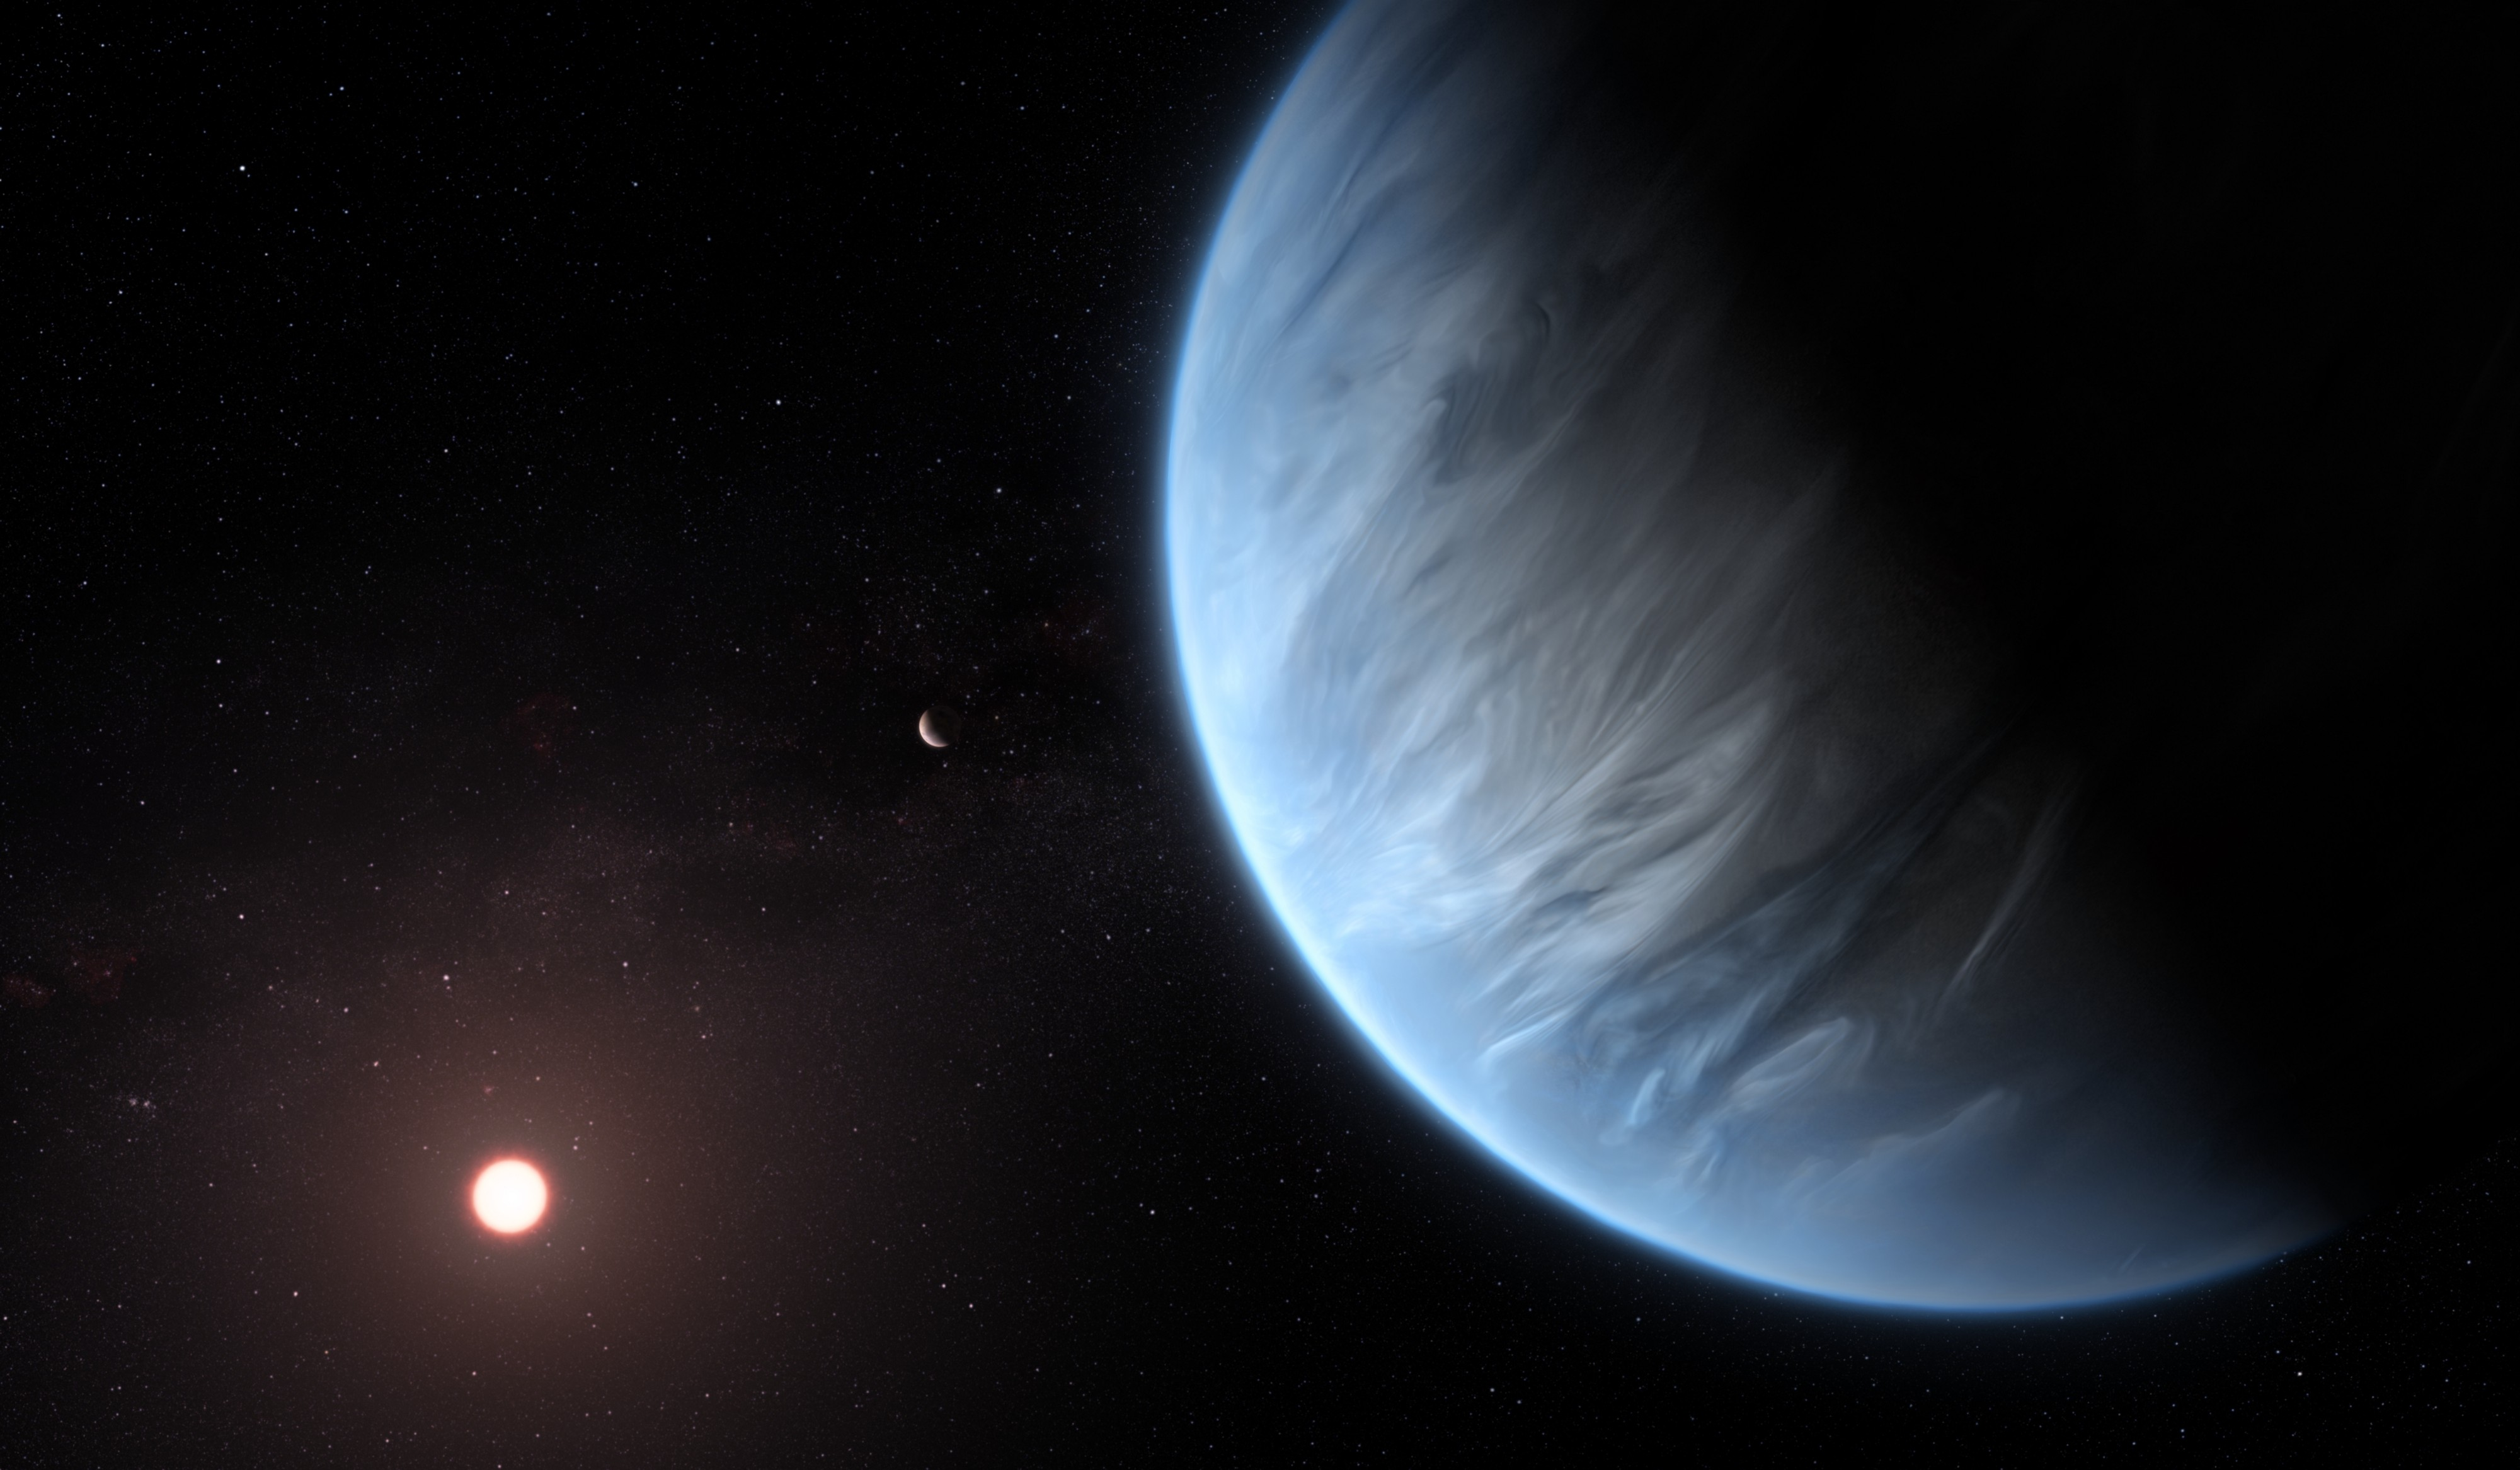 A planet covered in water, orbiting a small star with another planet visible in the background.